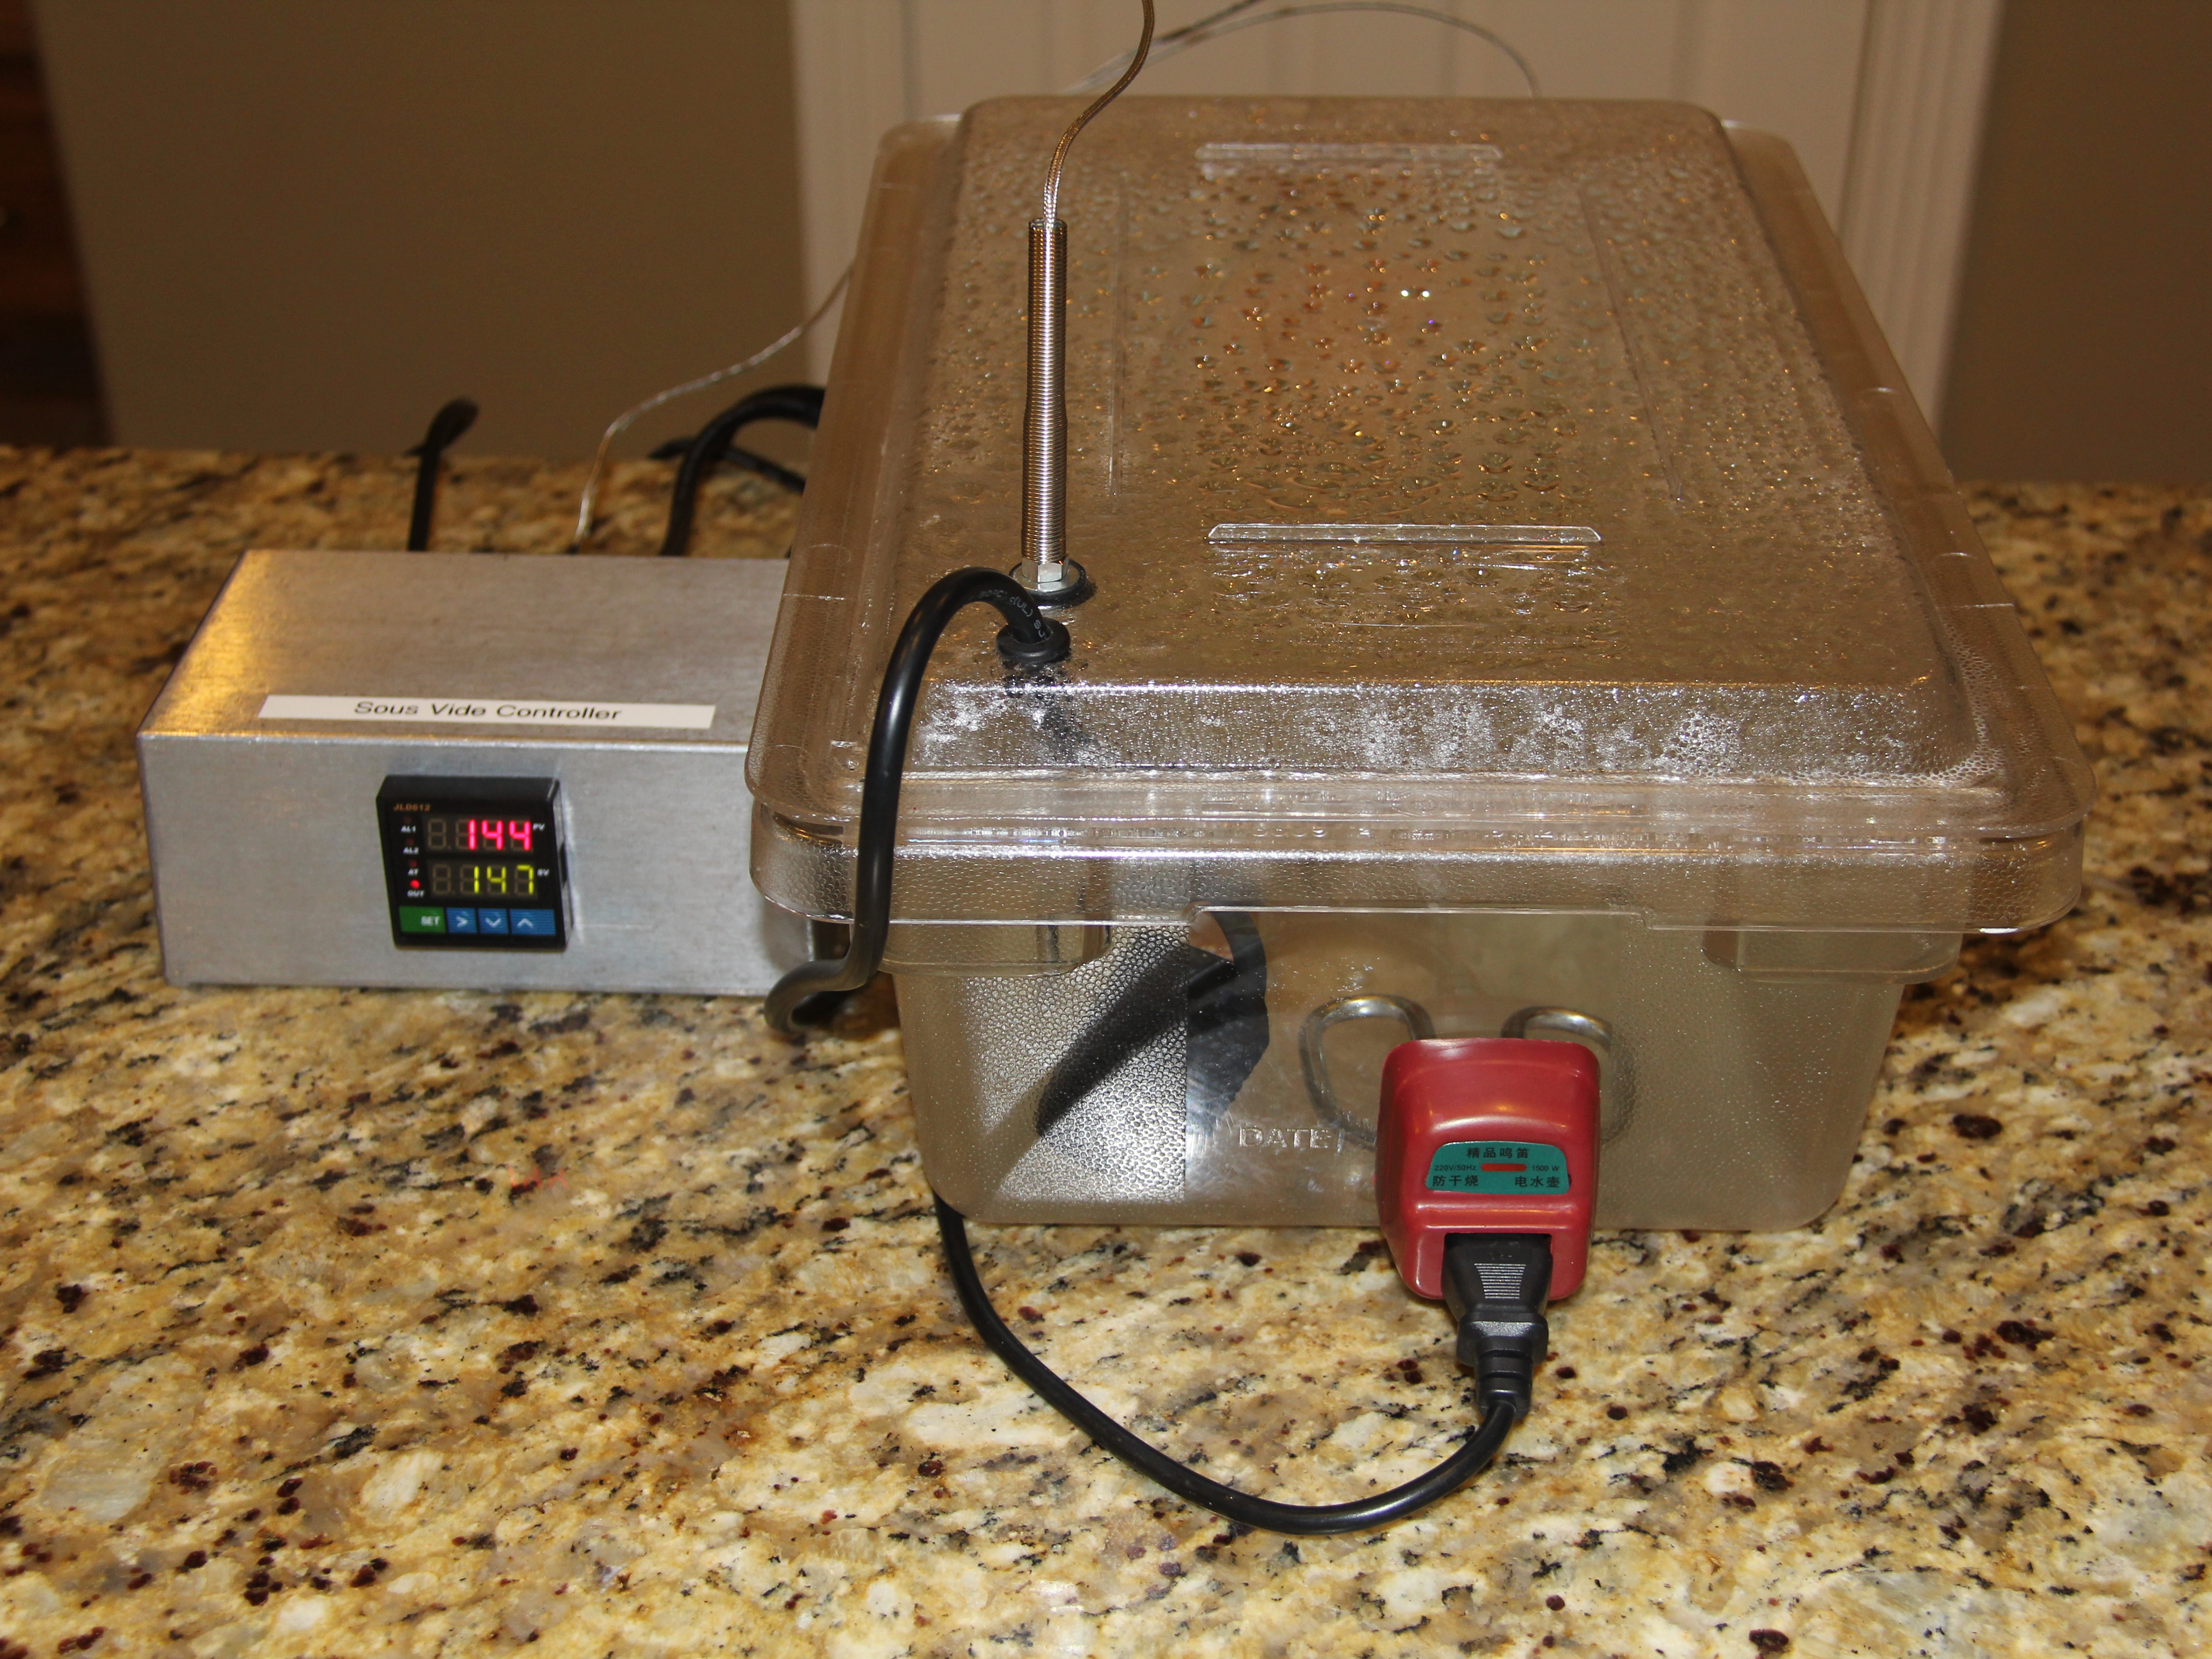 Sous Vide Cooker with UniversalController